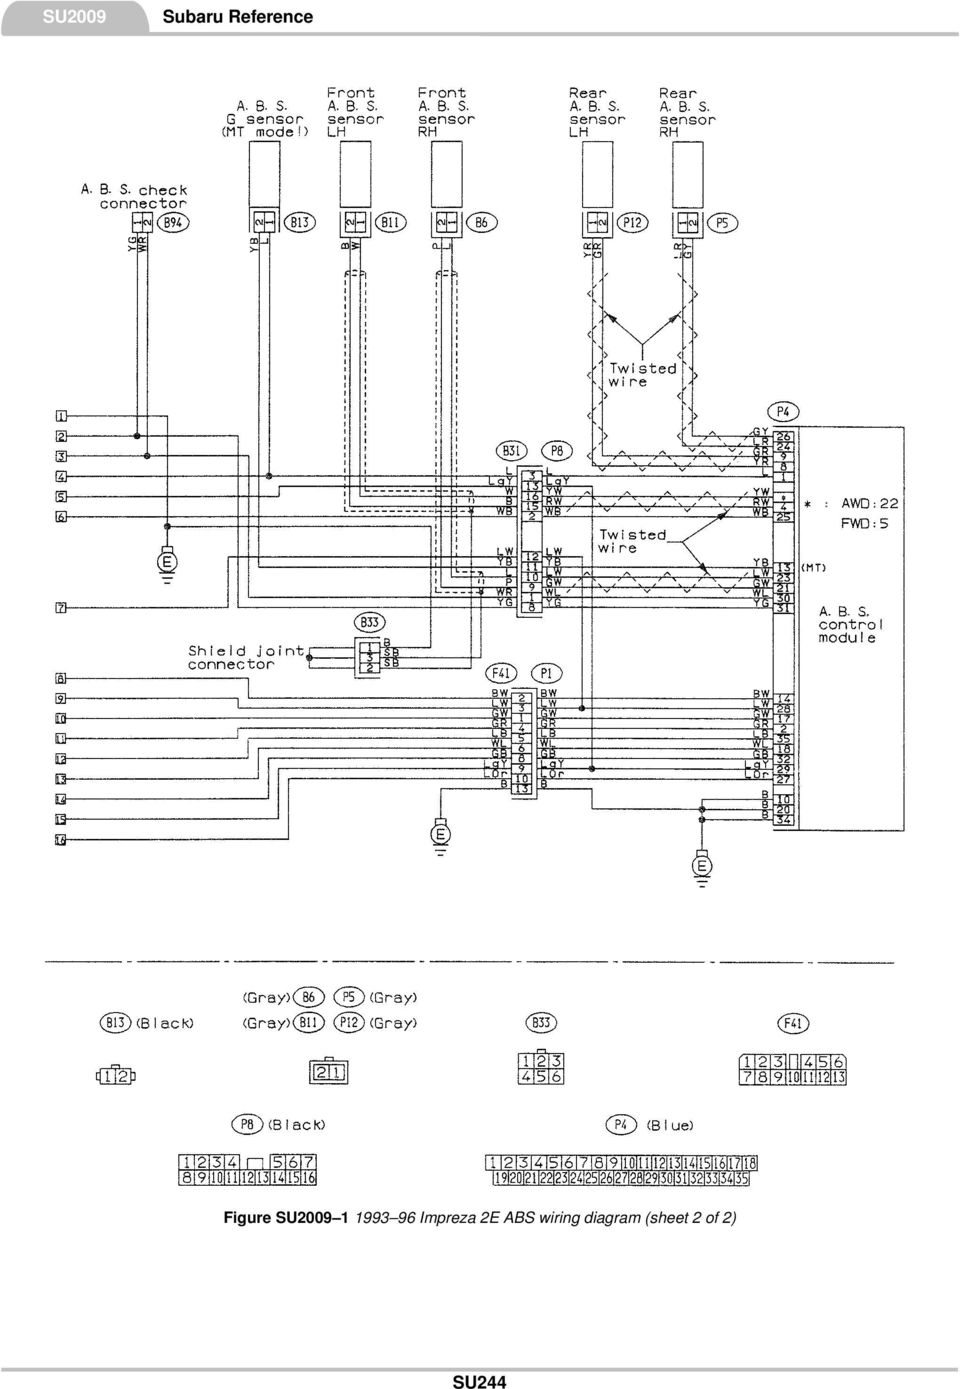 1996 Nissan Primera Radio Wiring Diagram Auto Electrical Fuse Box Manual Related With